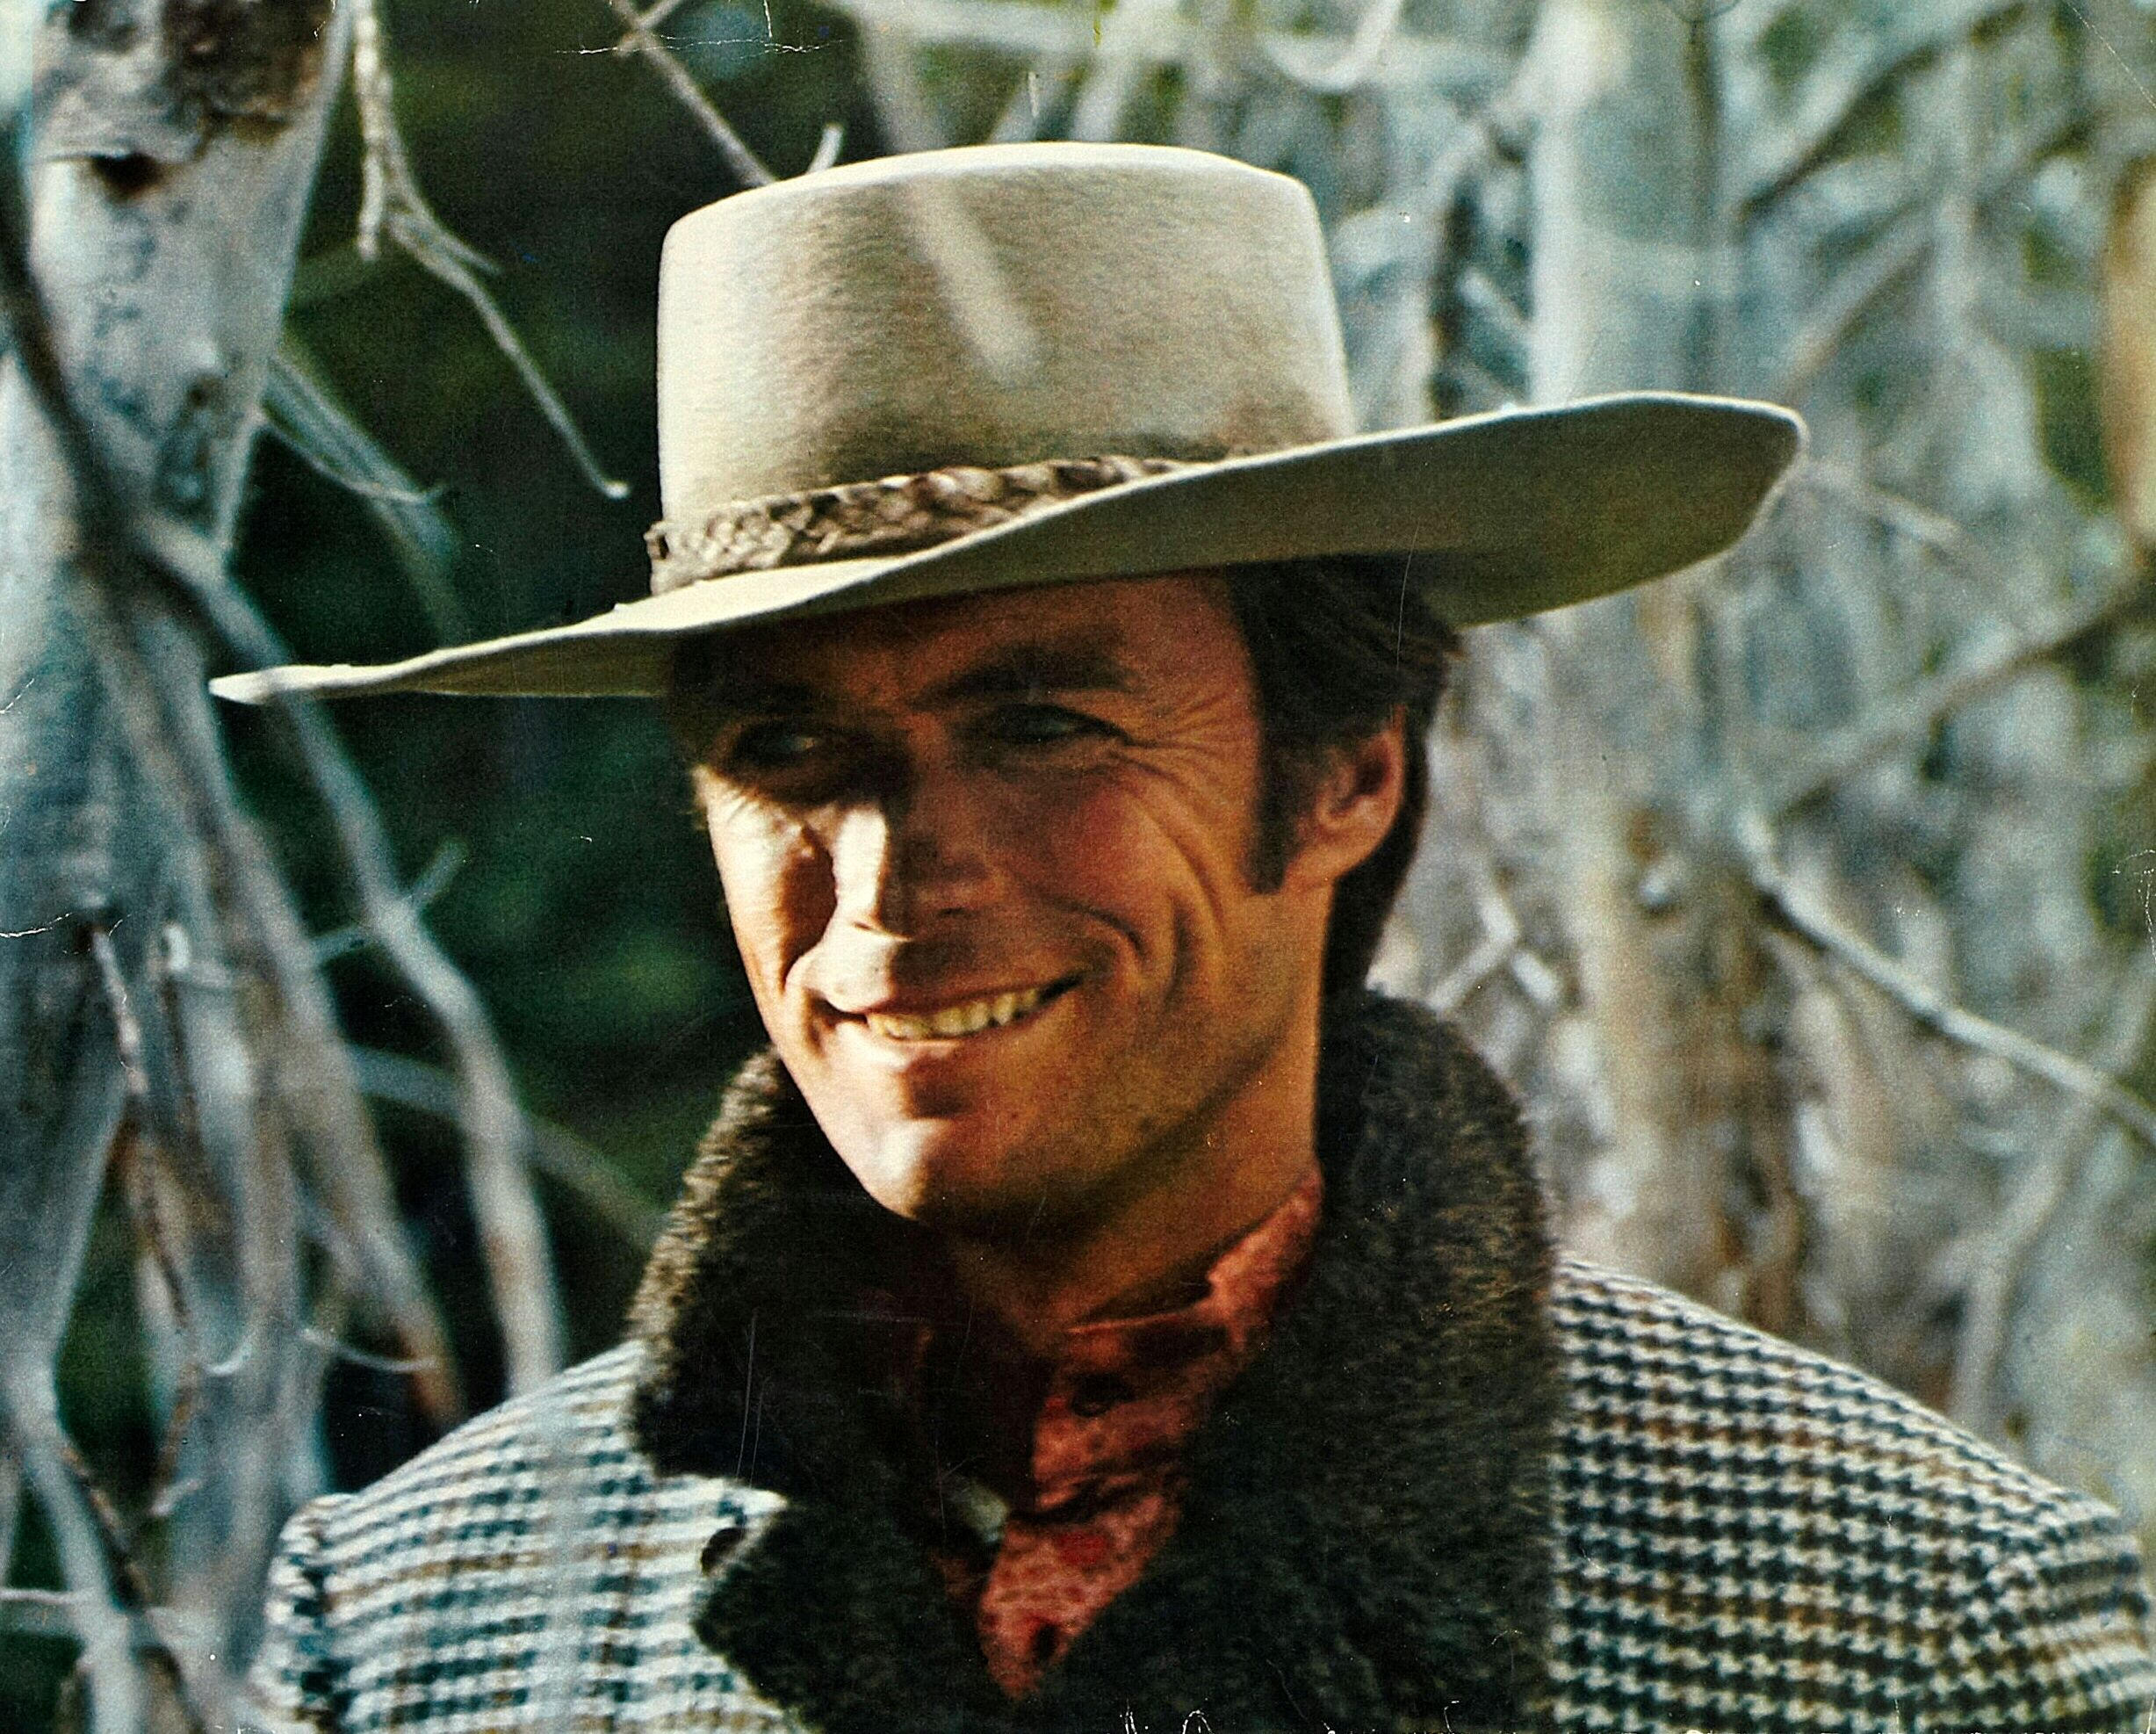 paint your wagon 1969 clint eastwood clint eastwood